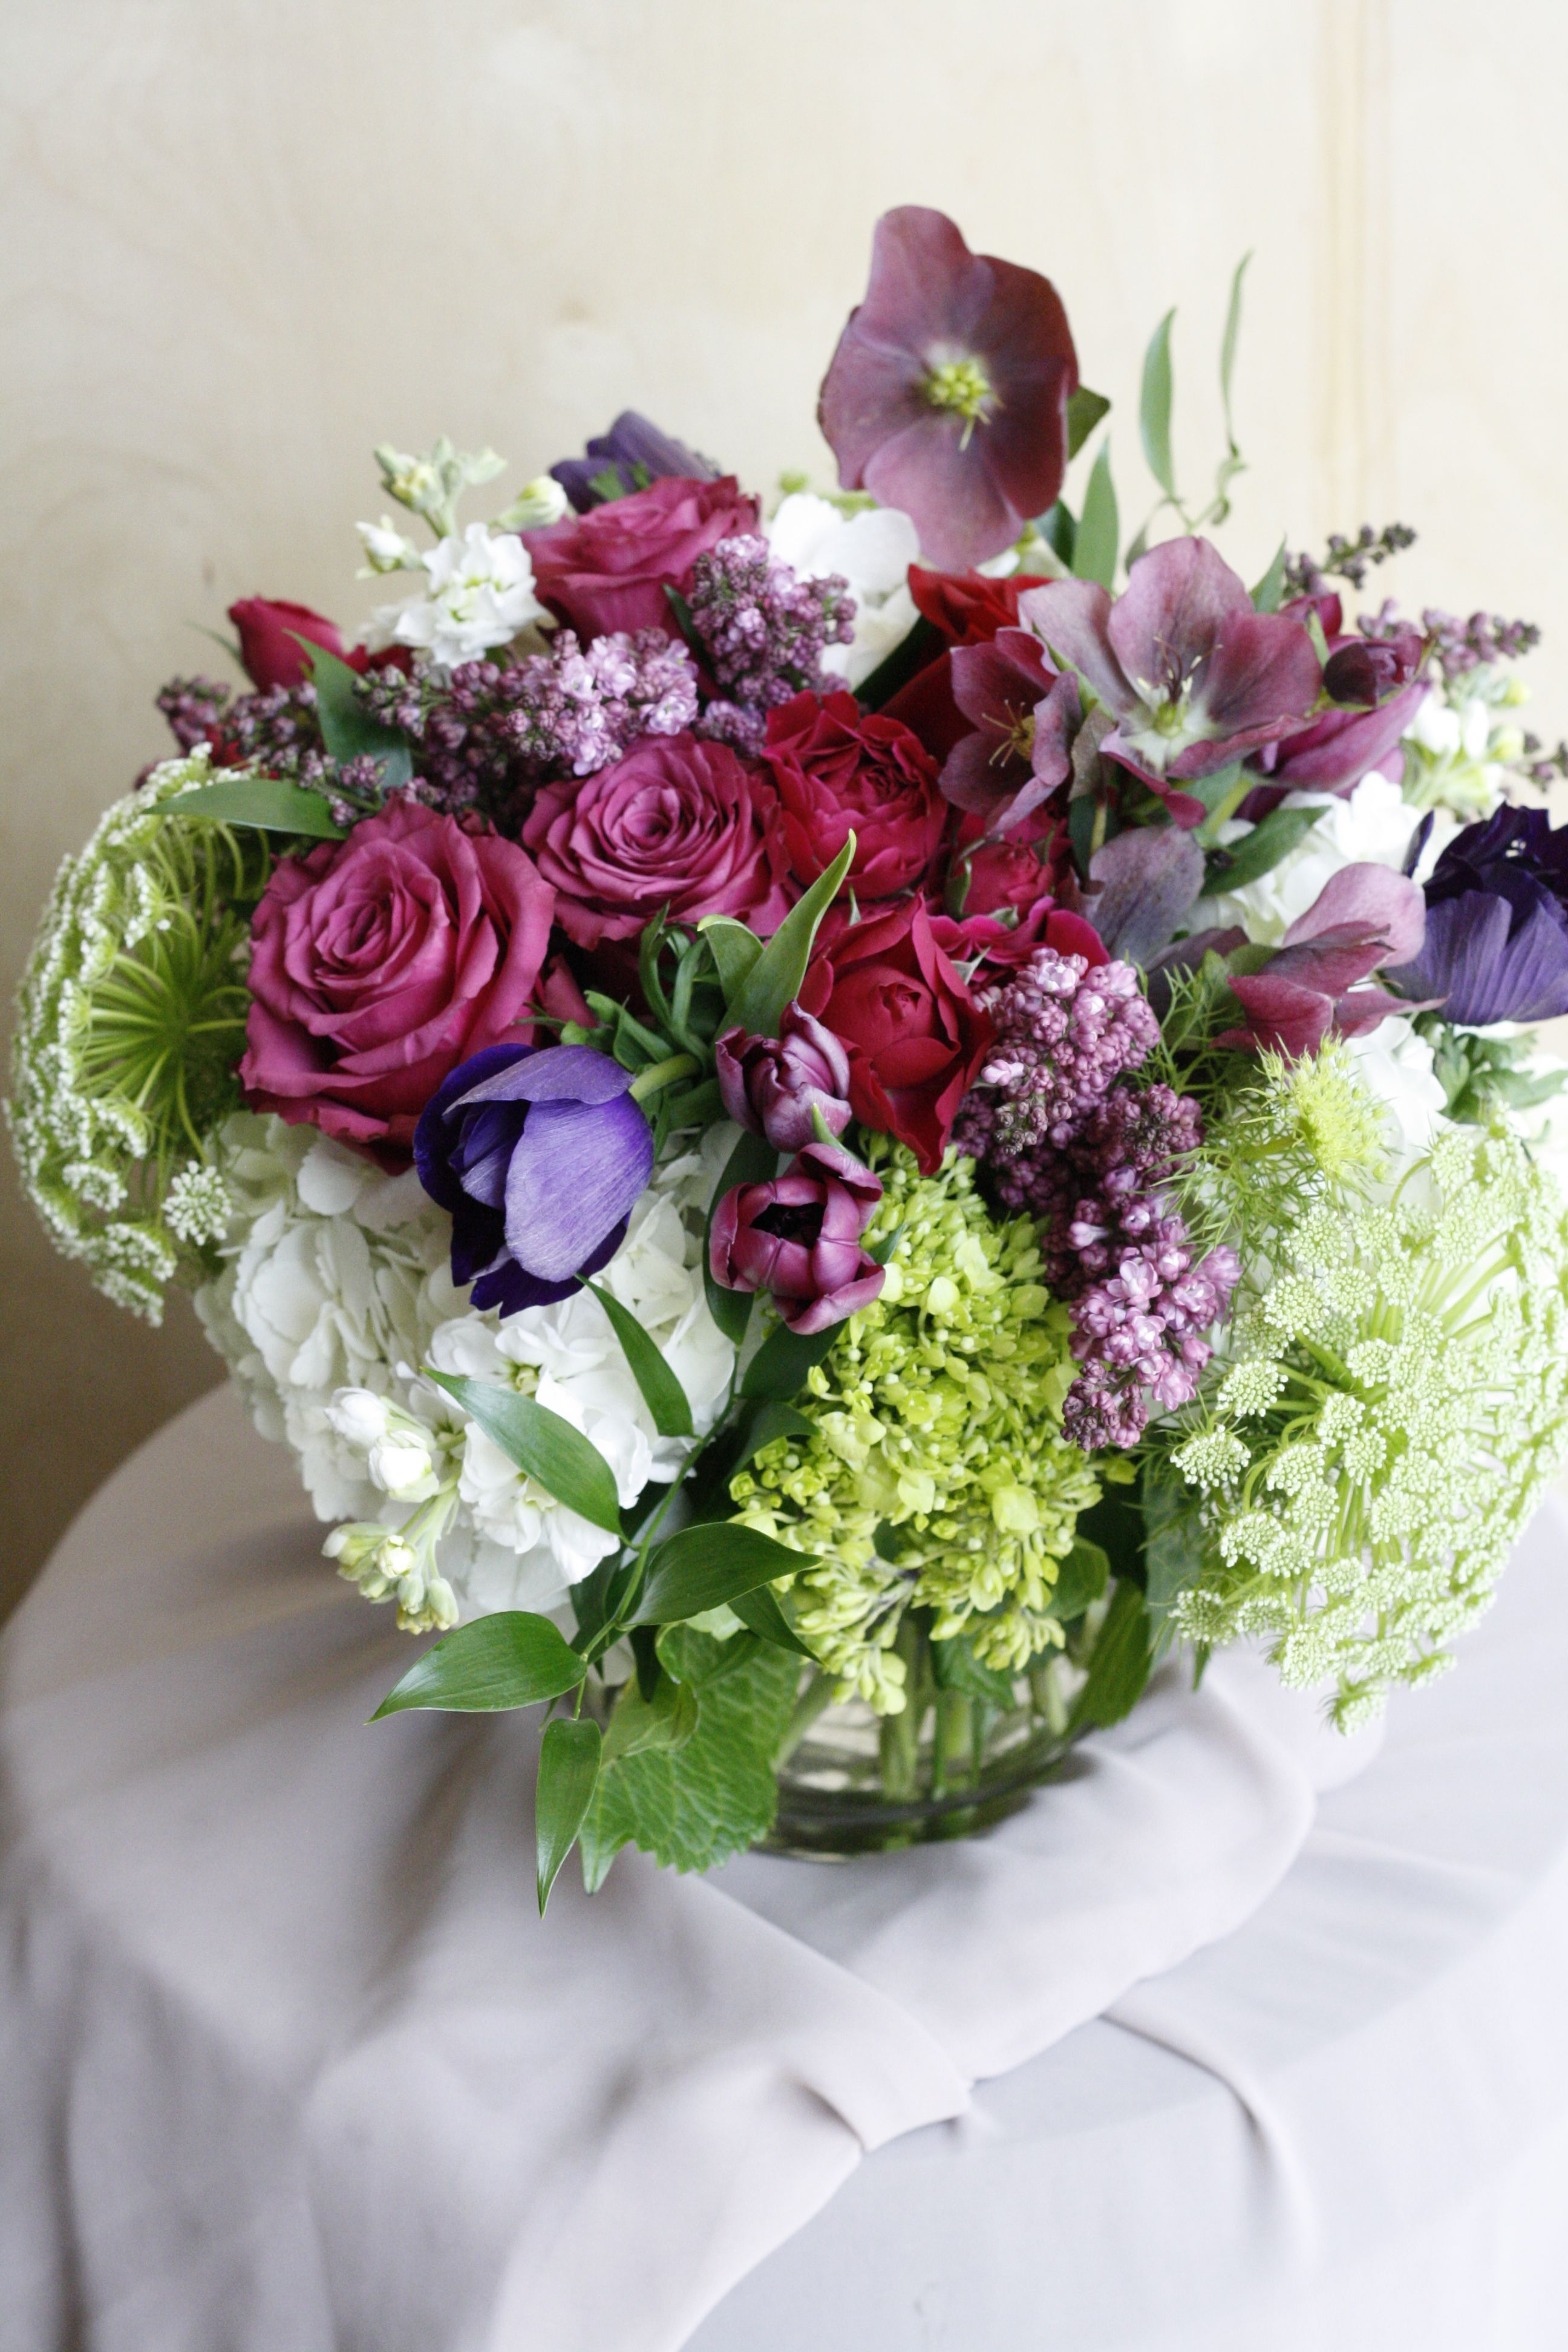 Order Florals For Every Occasion Throughout The Year Flower Arrangements Floral Arrangements Flower Delivery